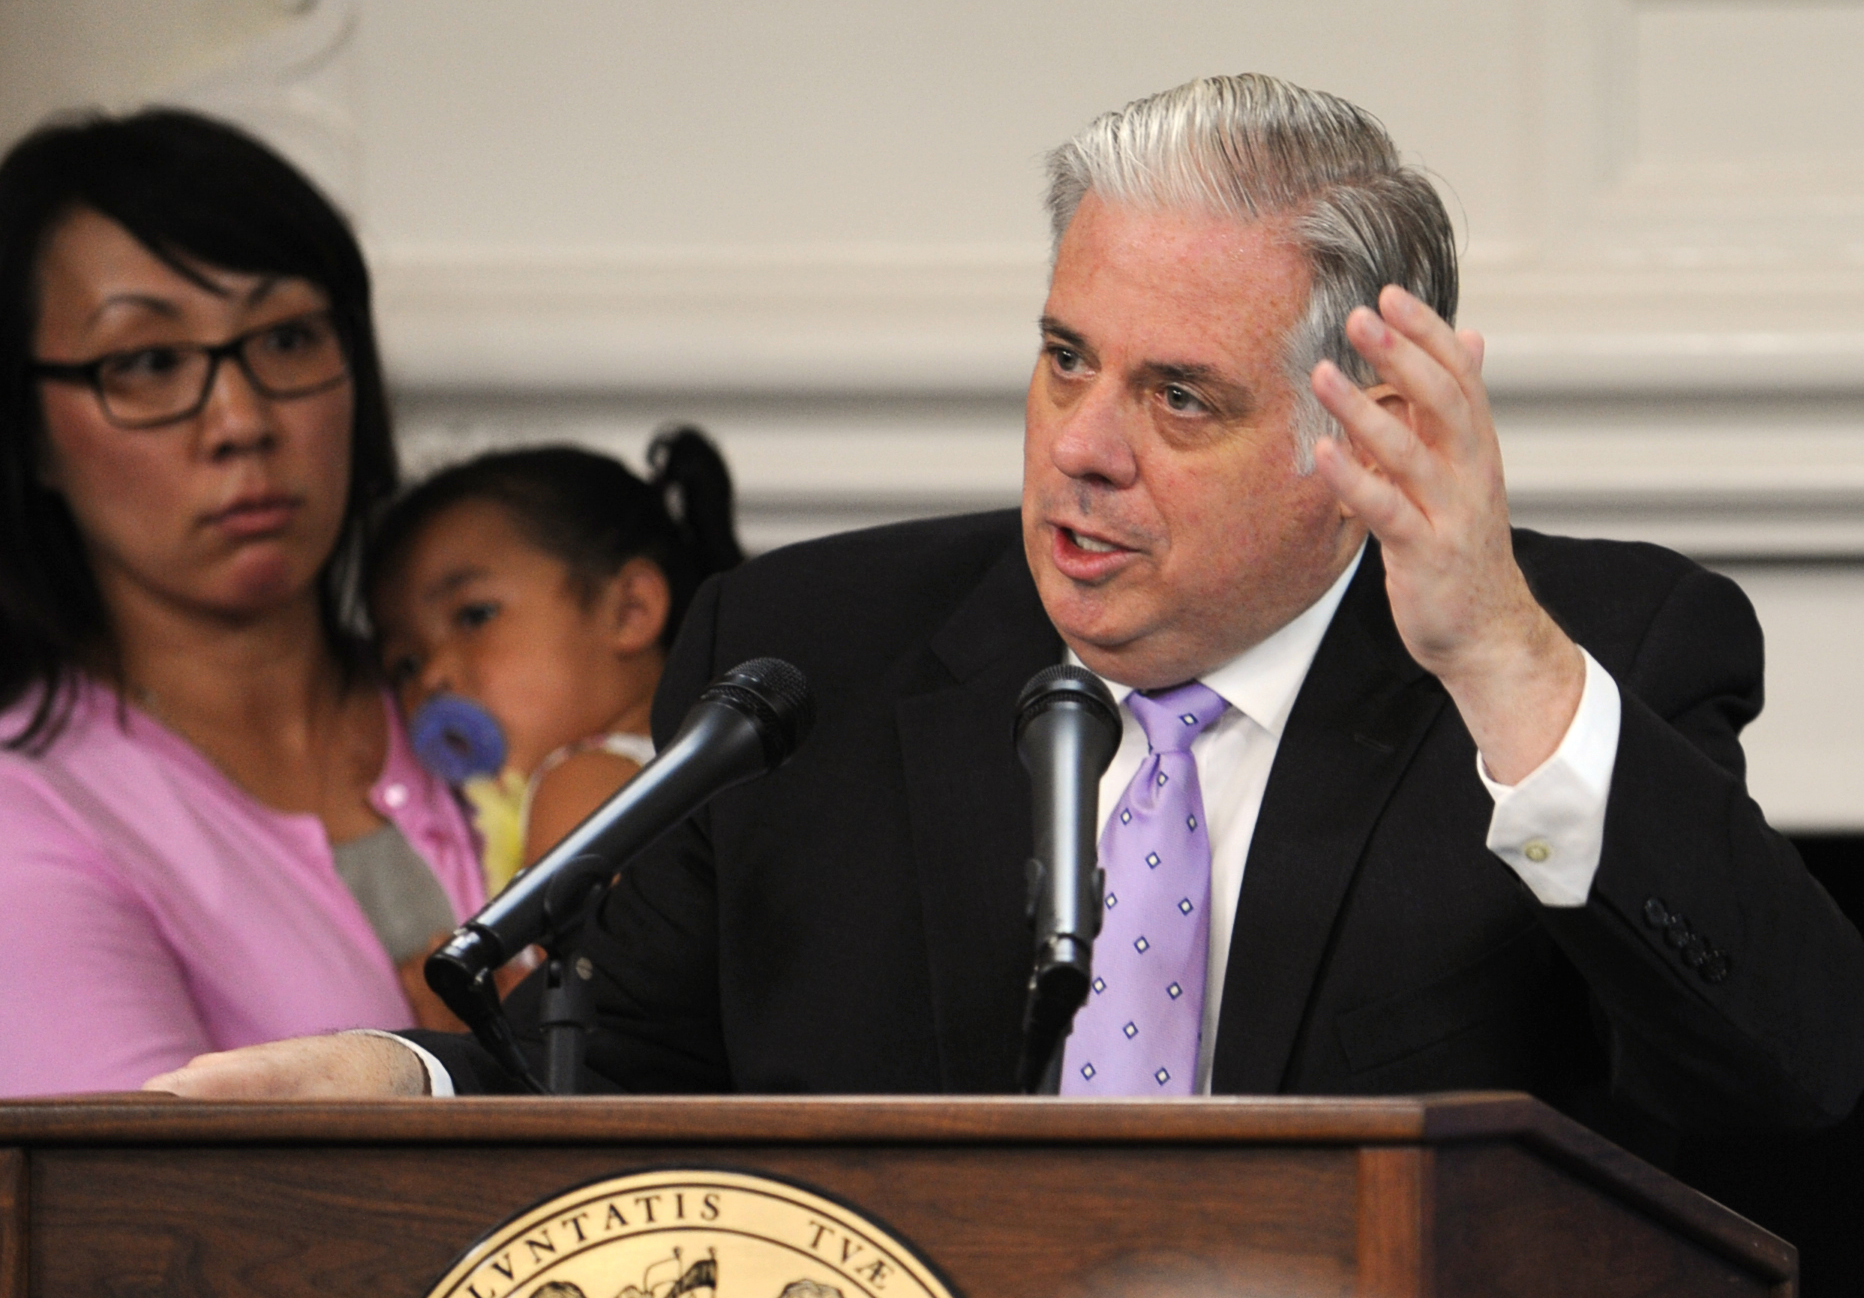 Maryland Gov. Larry Hogan shows Republicans how to draw support from both parties